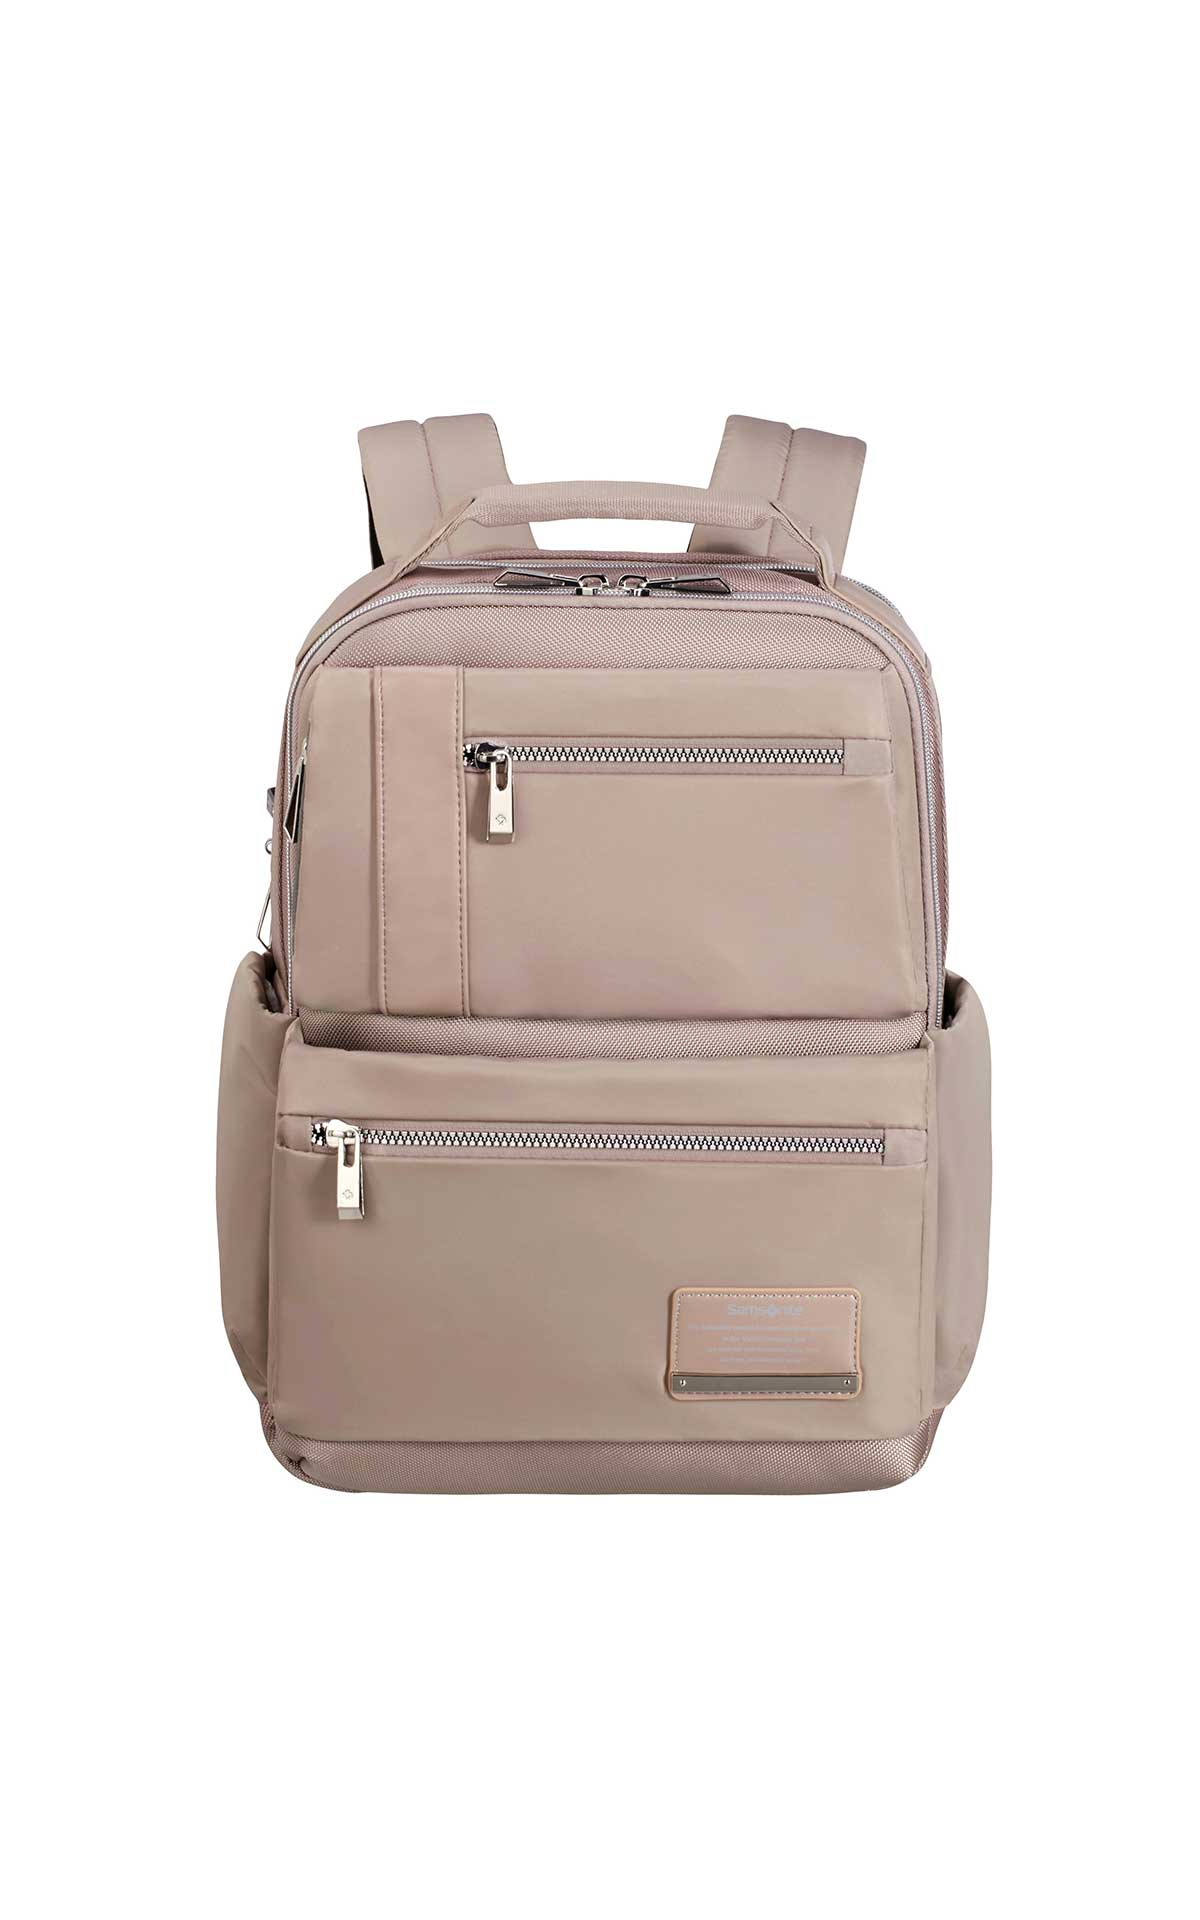 Beige Openroad backpack Samsonite